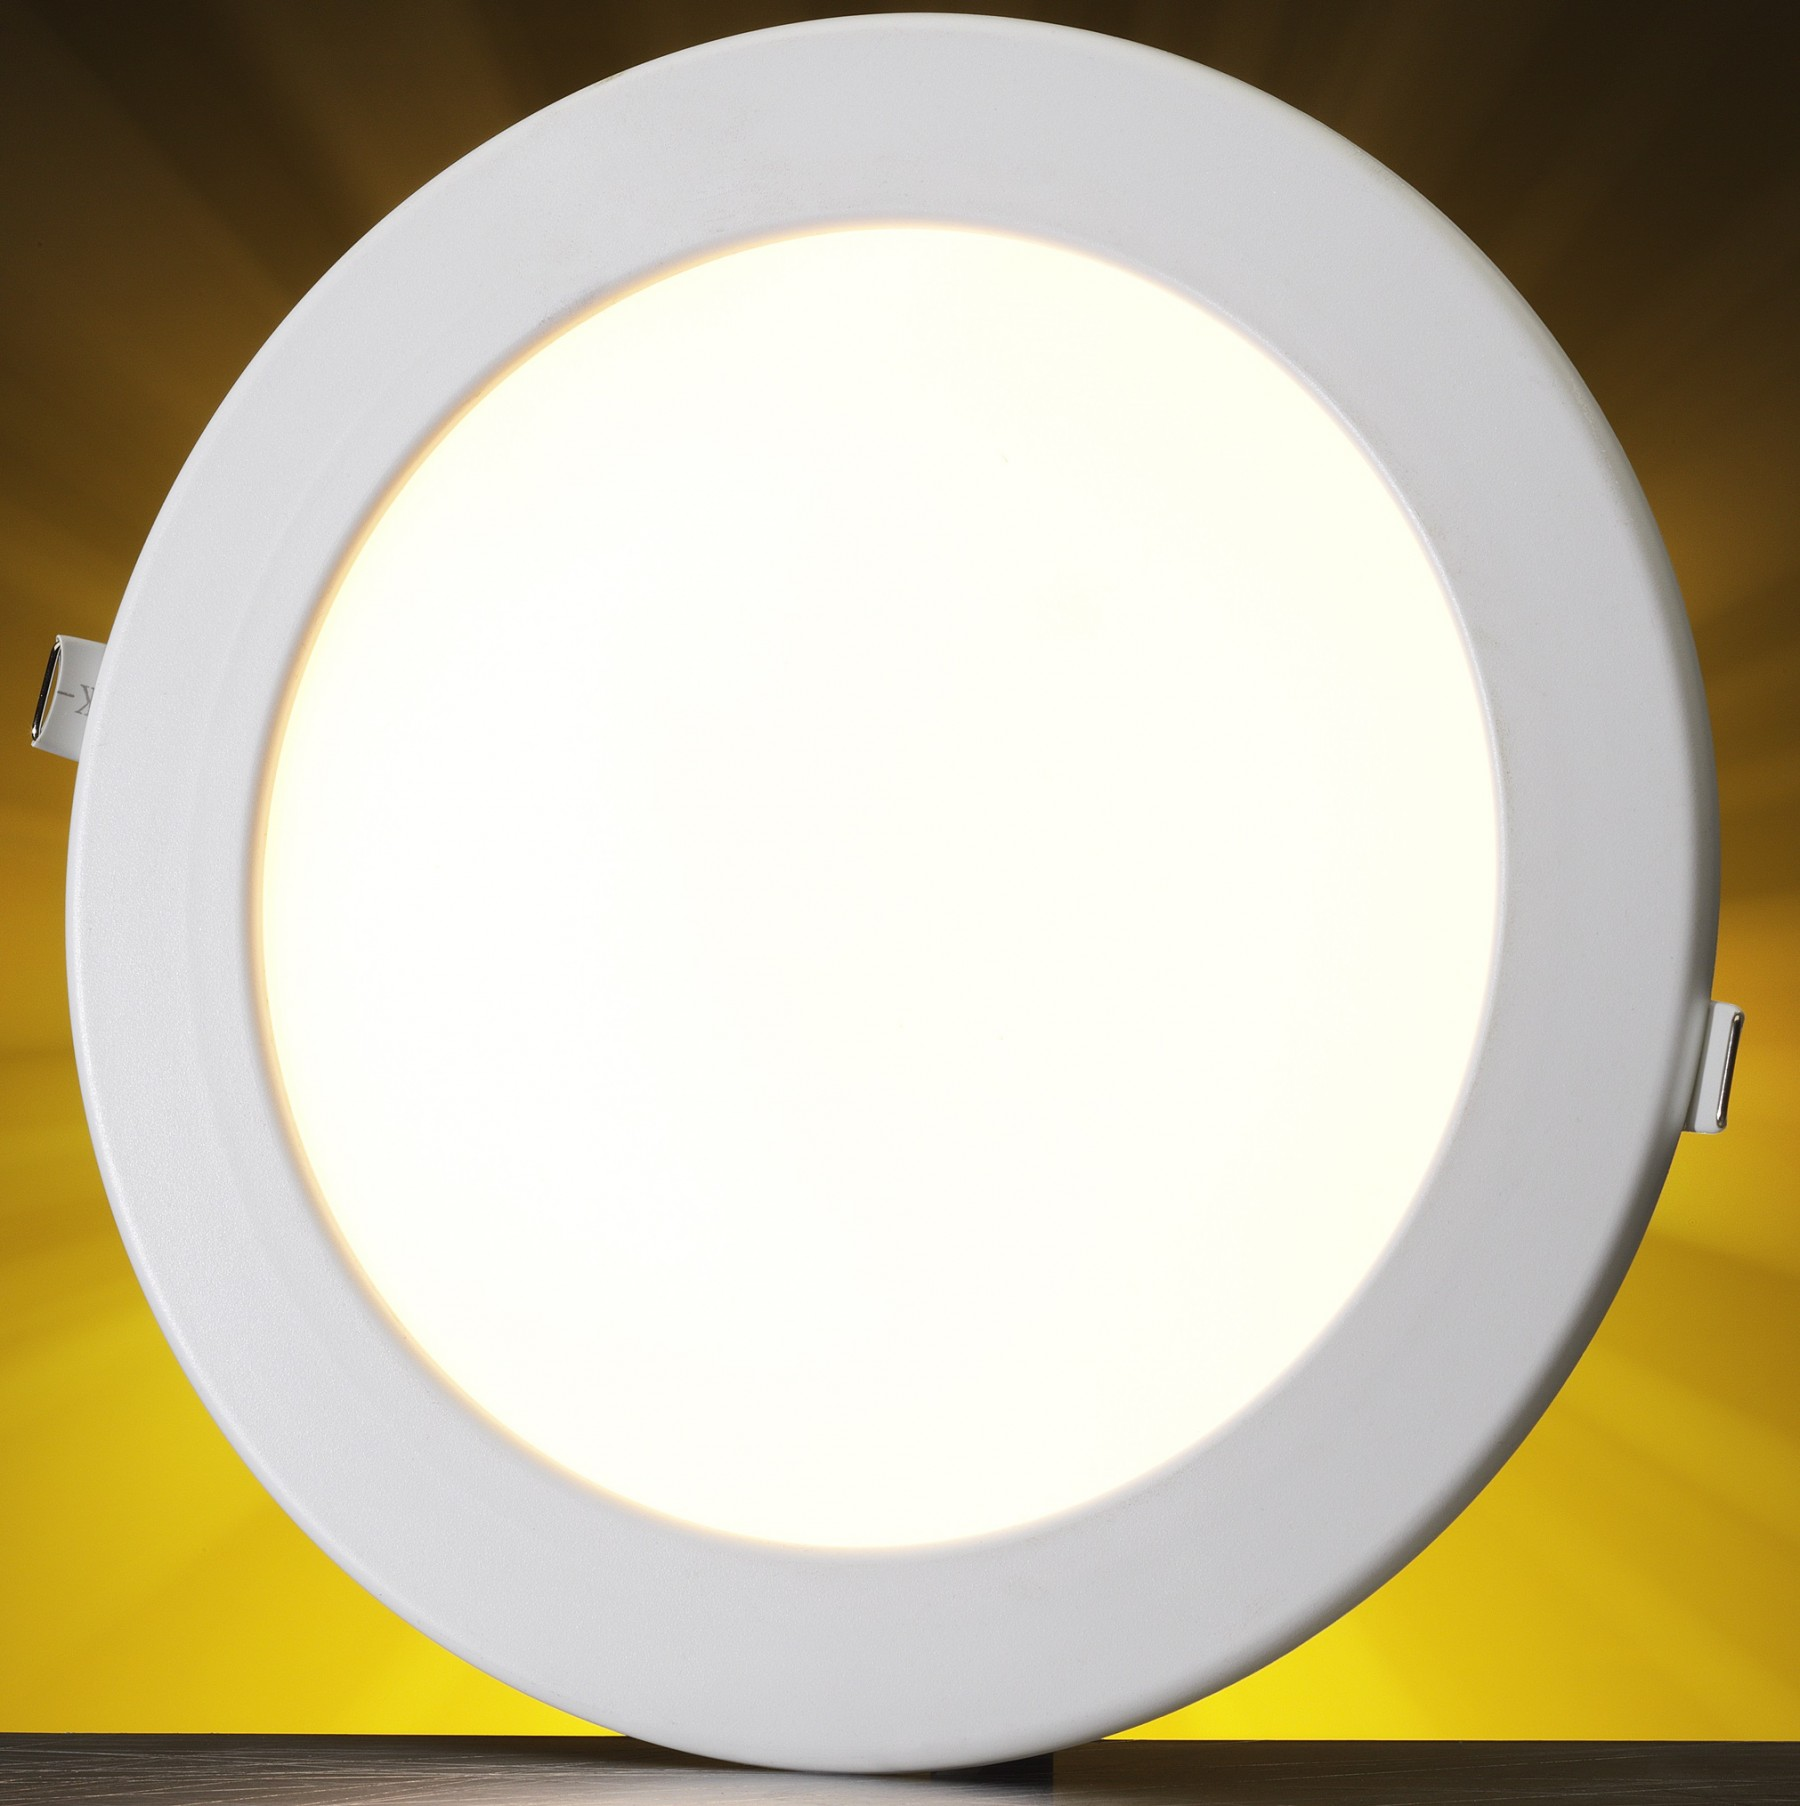 Led G 9 Auraglow Slimline Led Ceiling Downlight - 4000k / 6500k